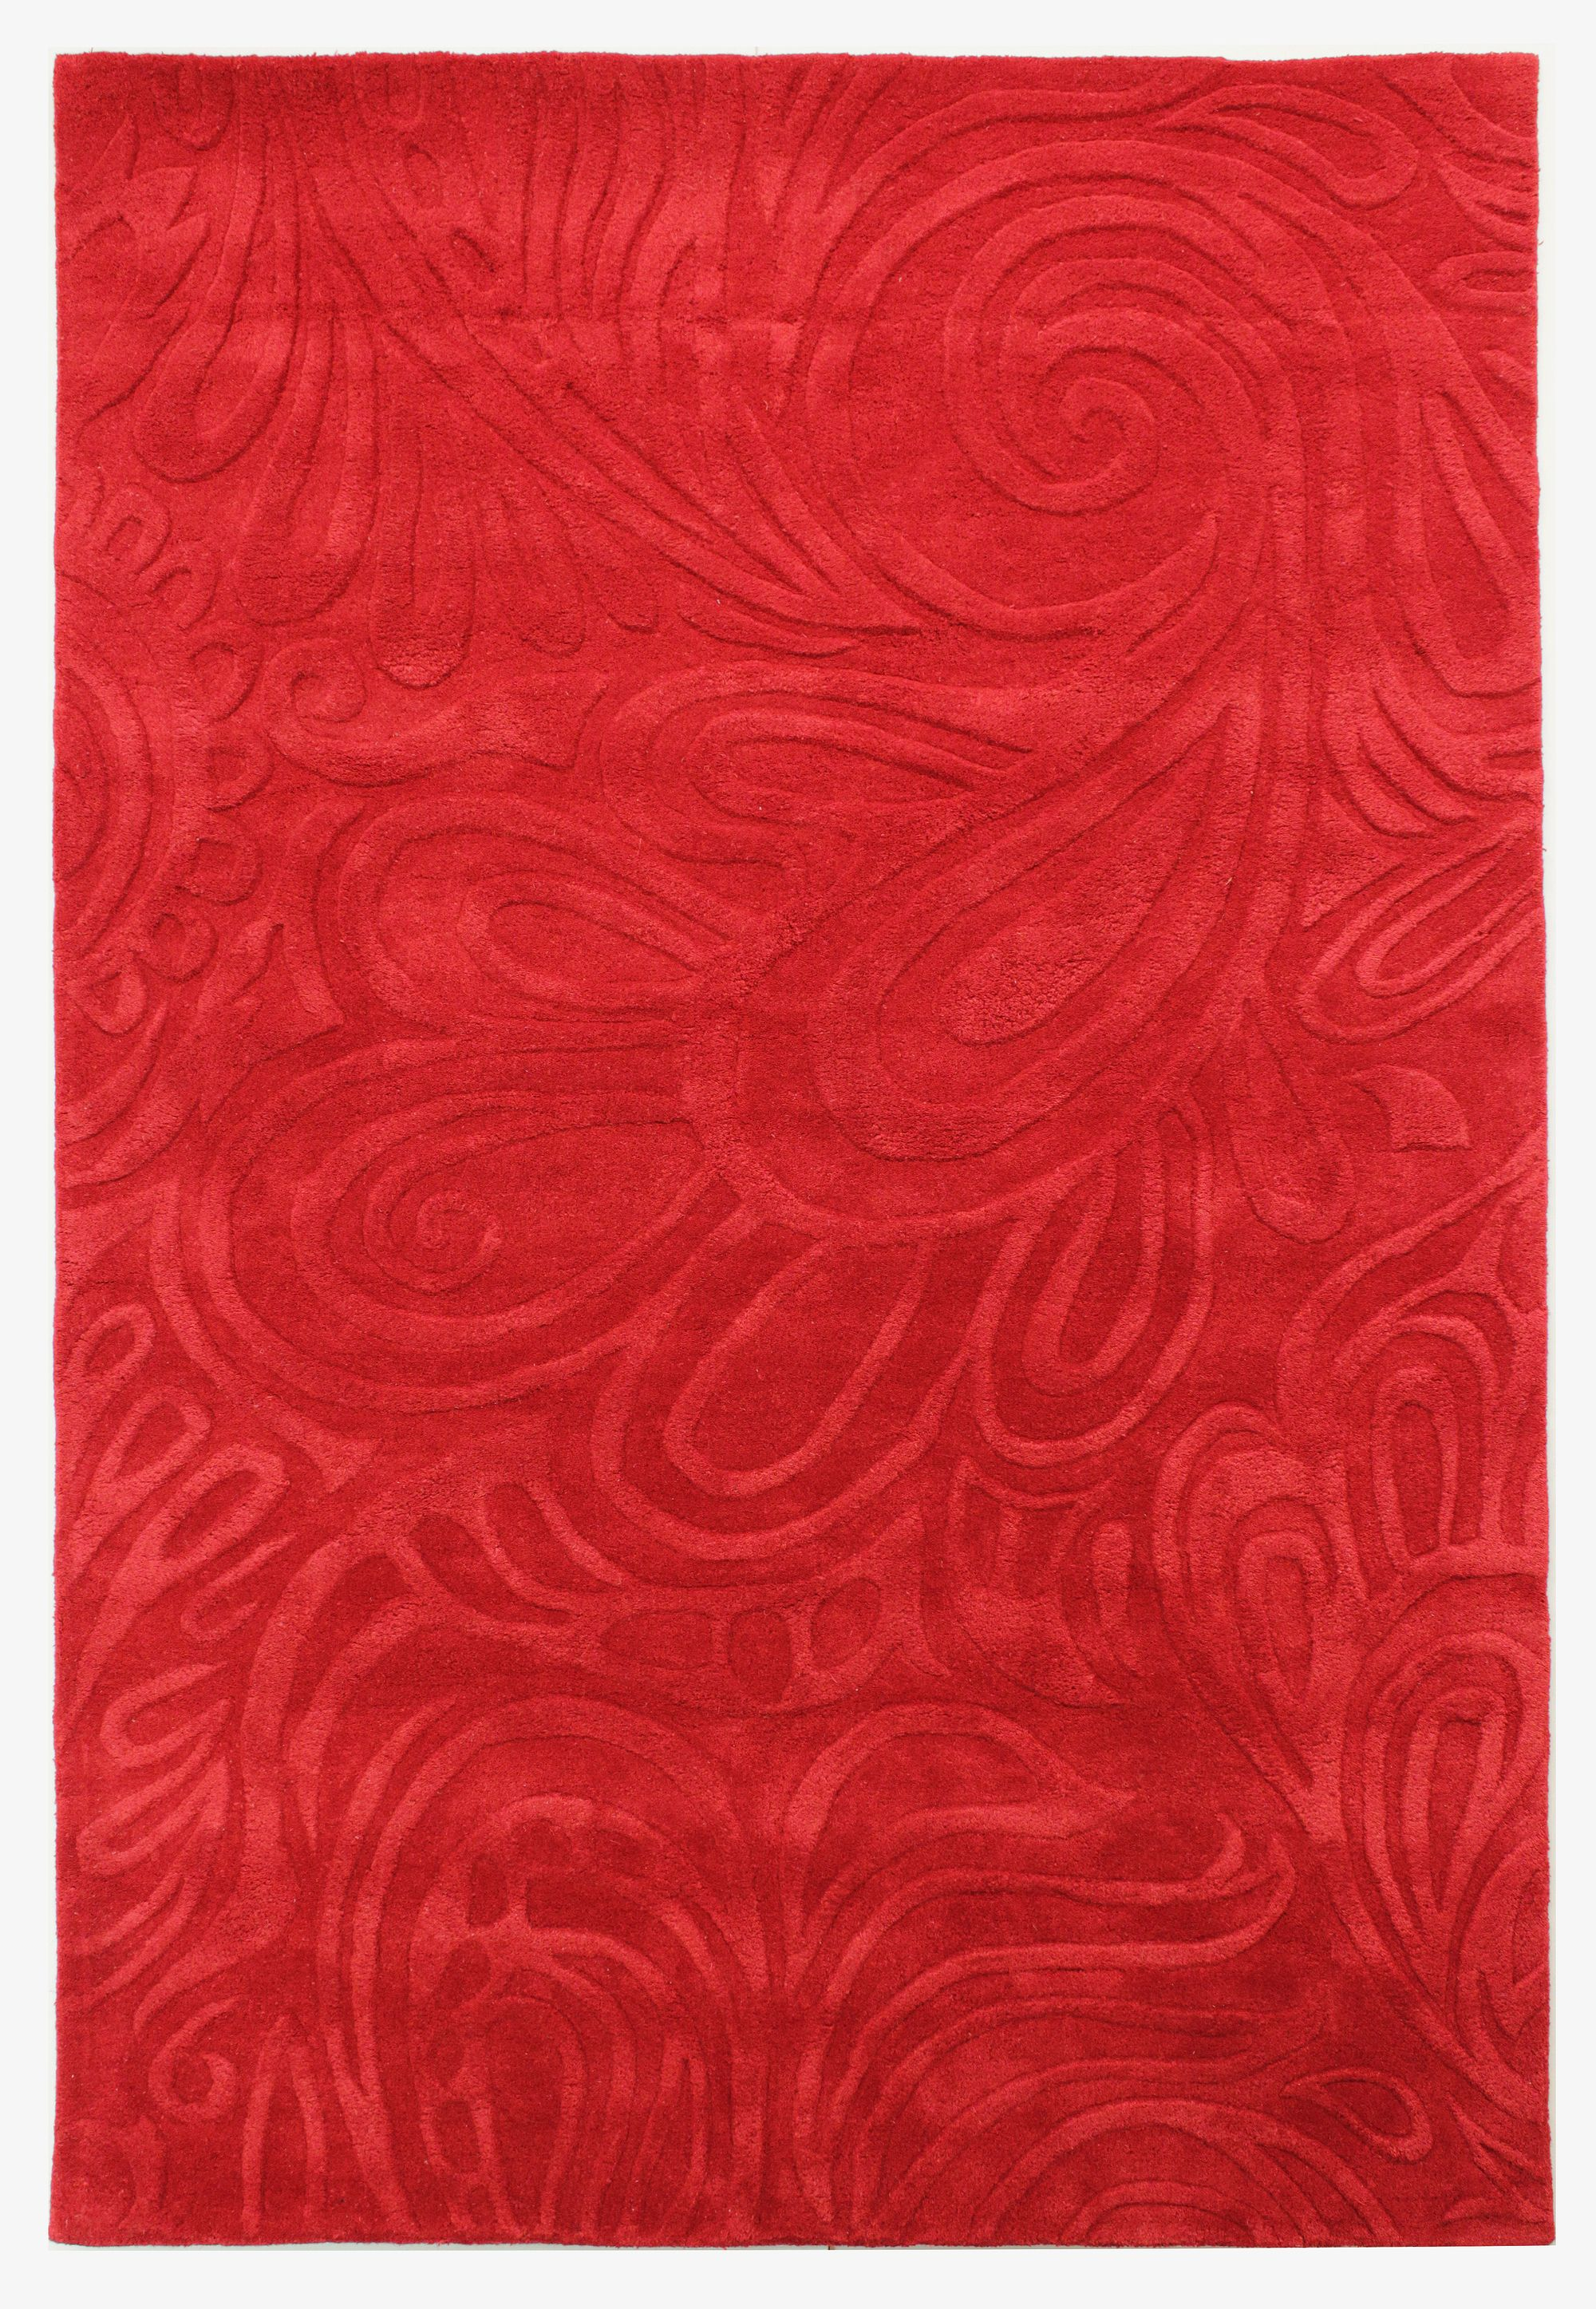 Flair Rugs Flair Rugs Carved paisley red rug 160x230cm